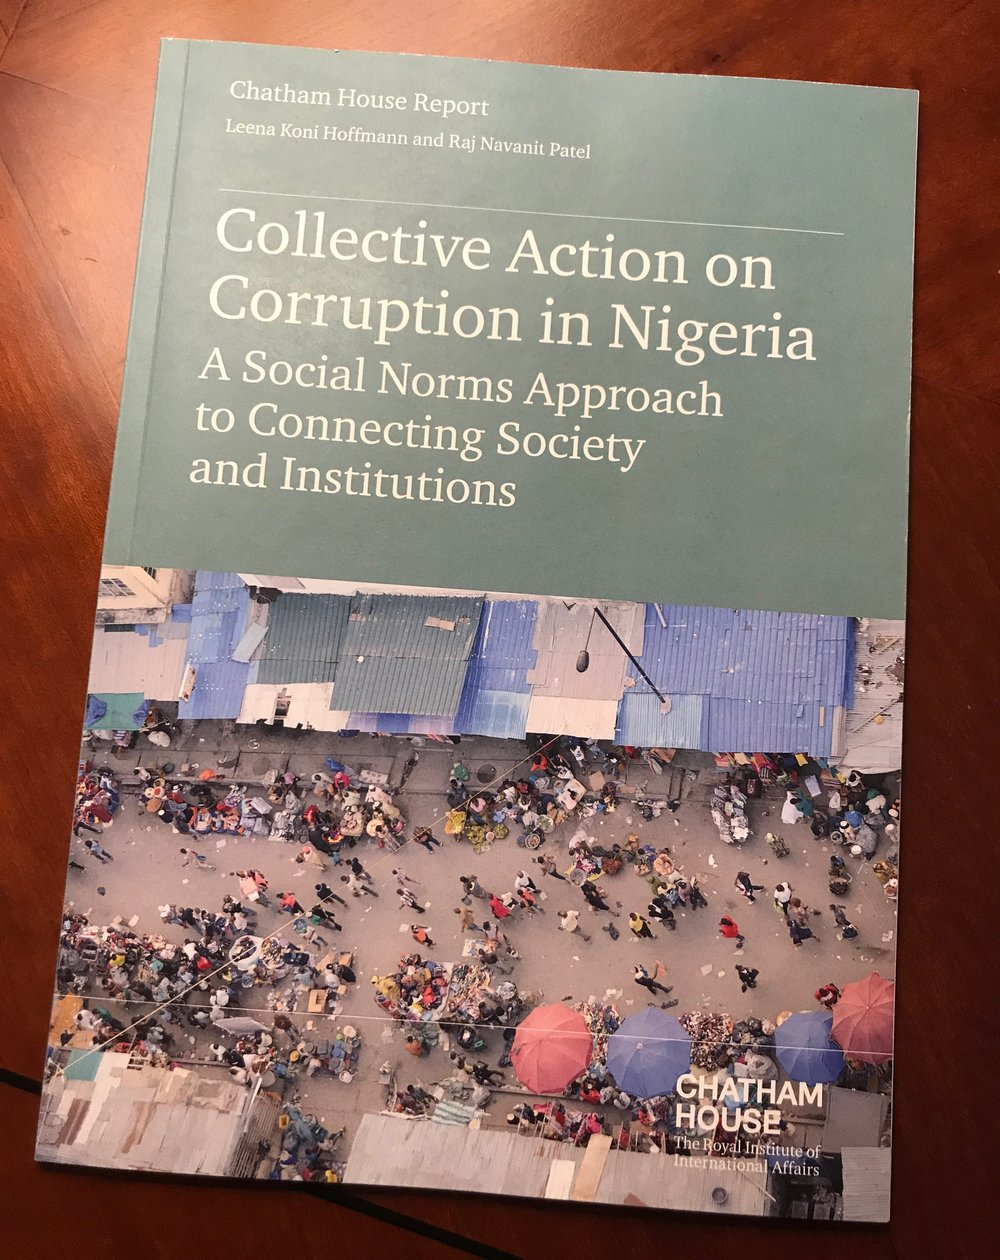 Click  here  for a copy of  Collective Action on Corruption in Nigeria .